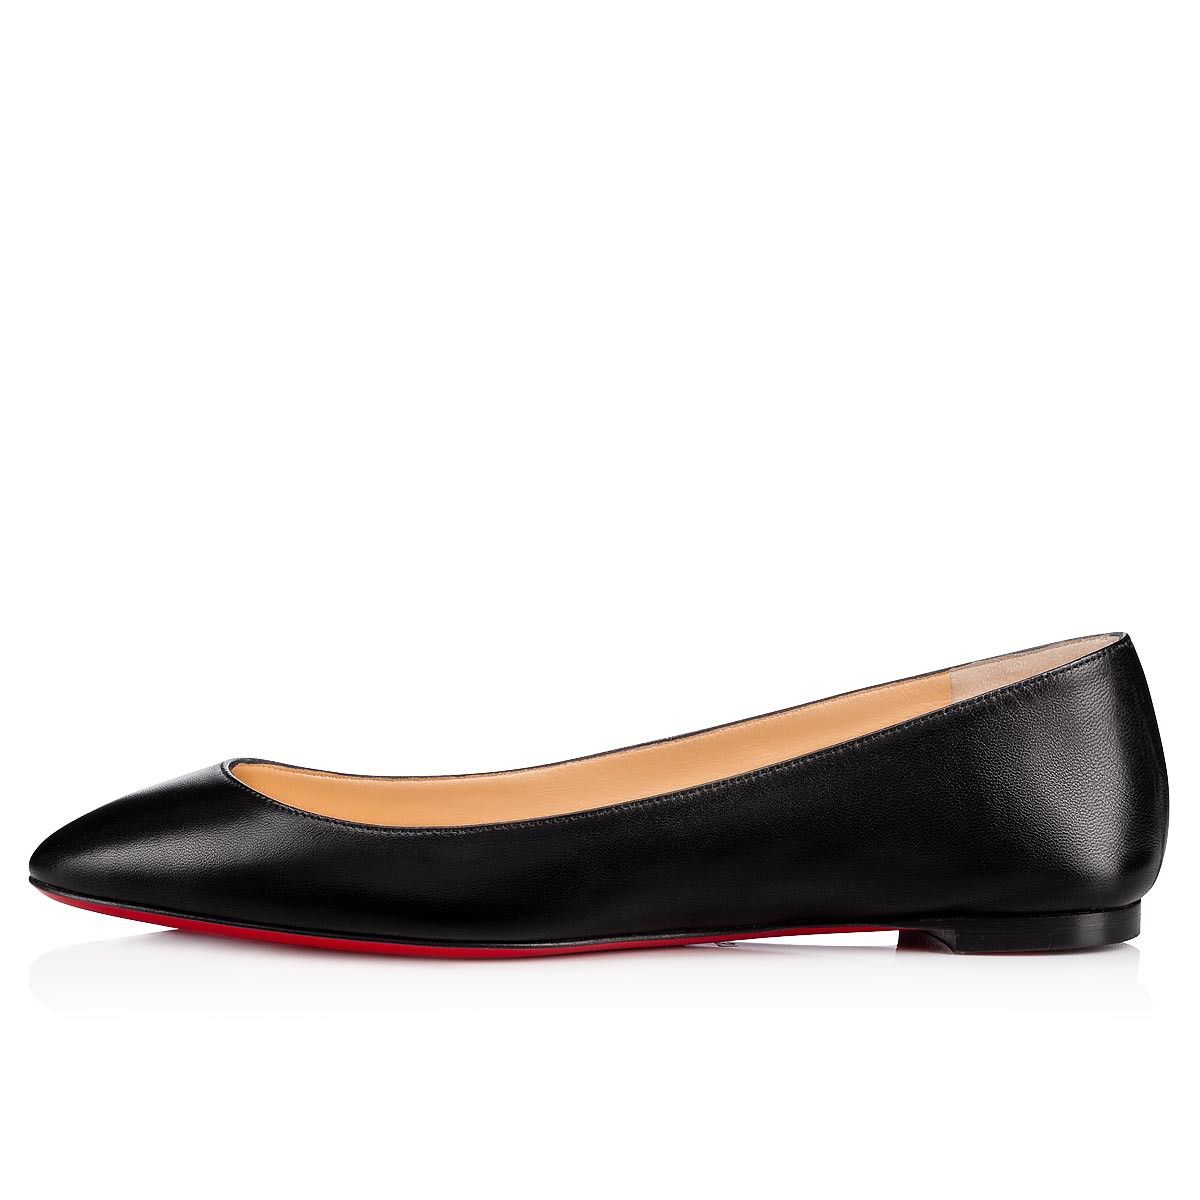 factory price a5257 808e7 Christian Louboutin Eloise Flat in 2019 | Shoes | Shoes ...